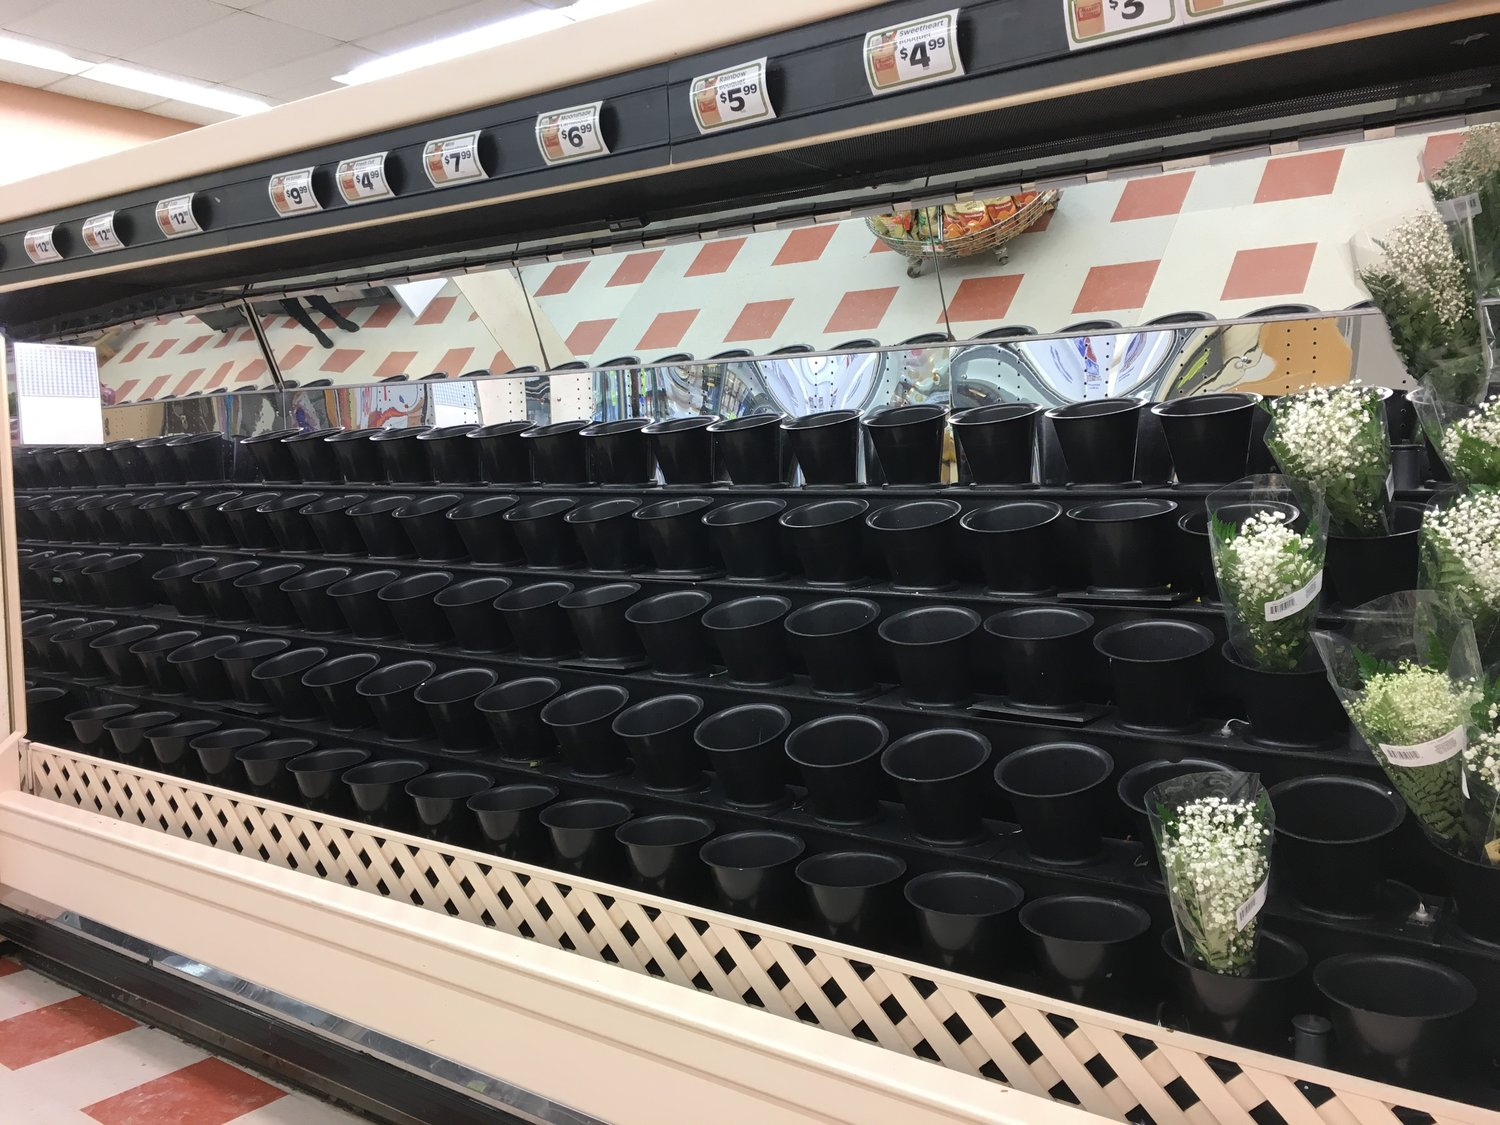 A grocery store floral display that has been emptied out of all the flowers.